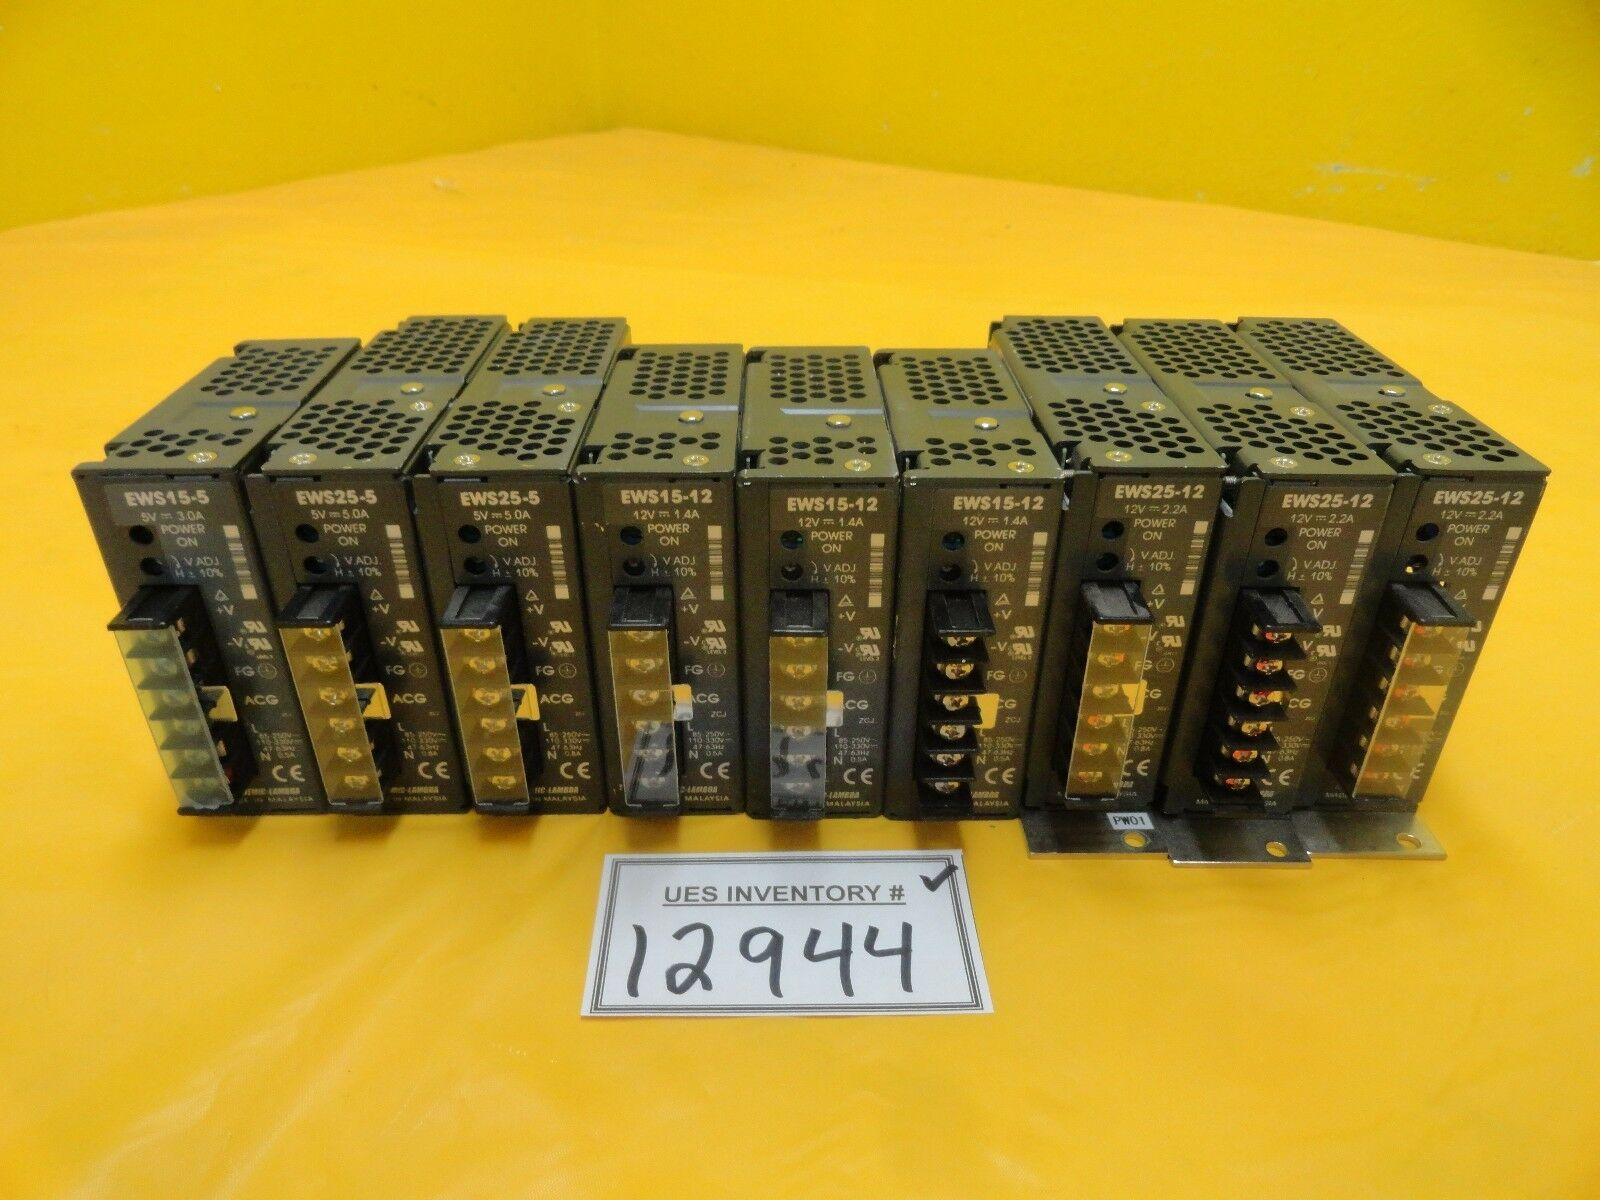 Nemic-Lambda EWS25-12 DC Power Supply EWS25-5 EWS15-12 EWS15-5 Lot of 9 Used